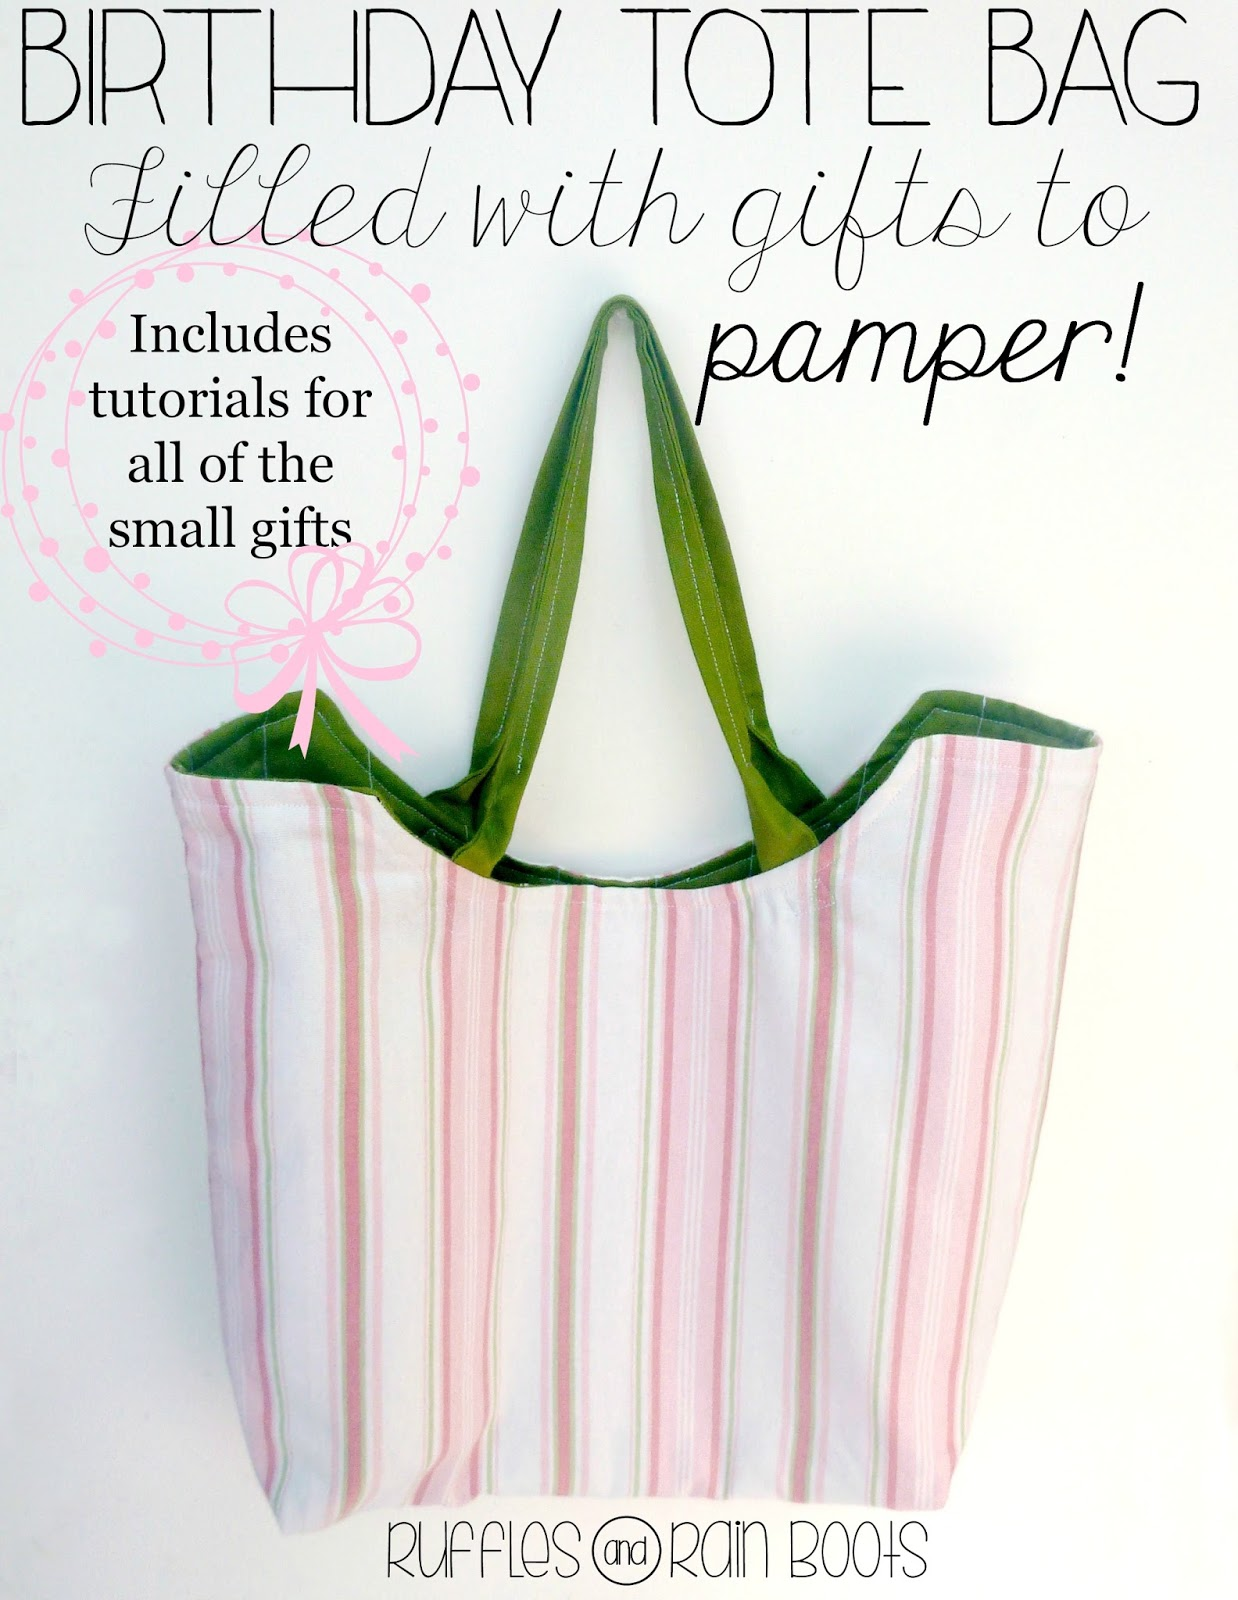 Birthday tote bag and gift ideas from ruffles and rain boots